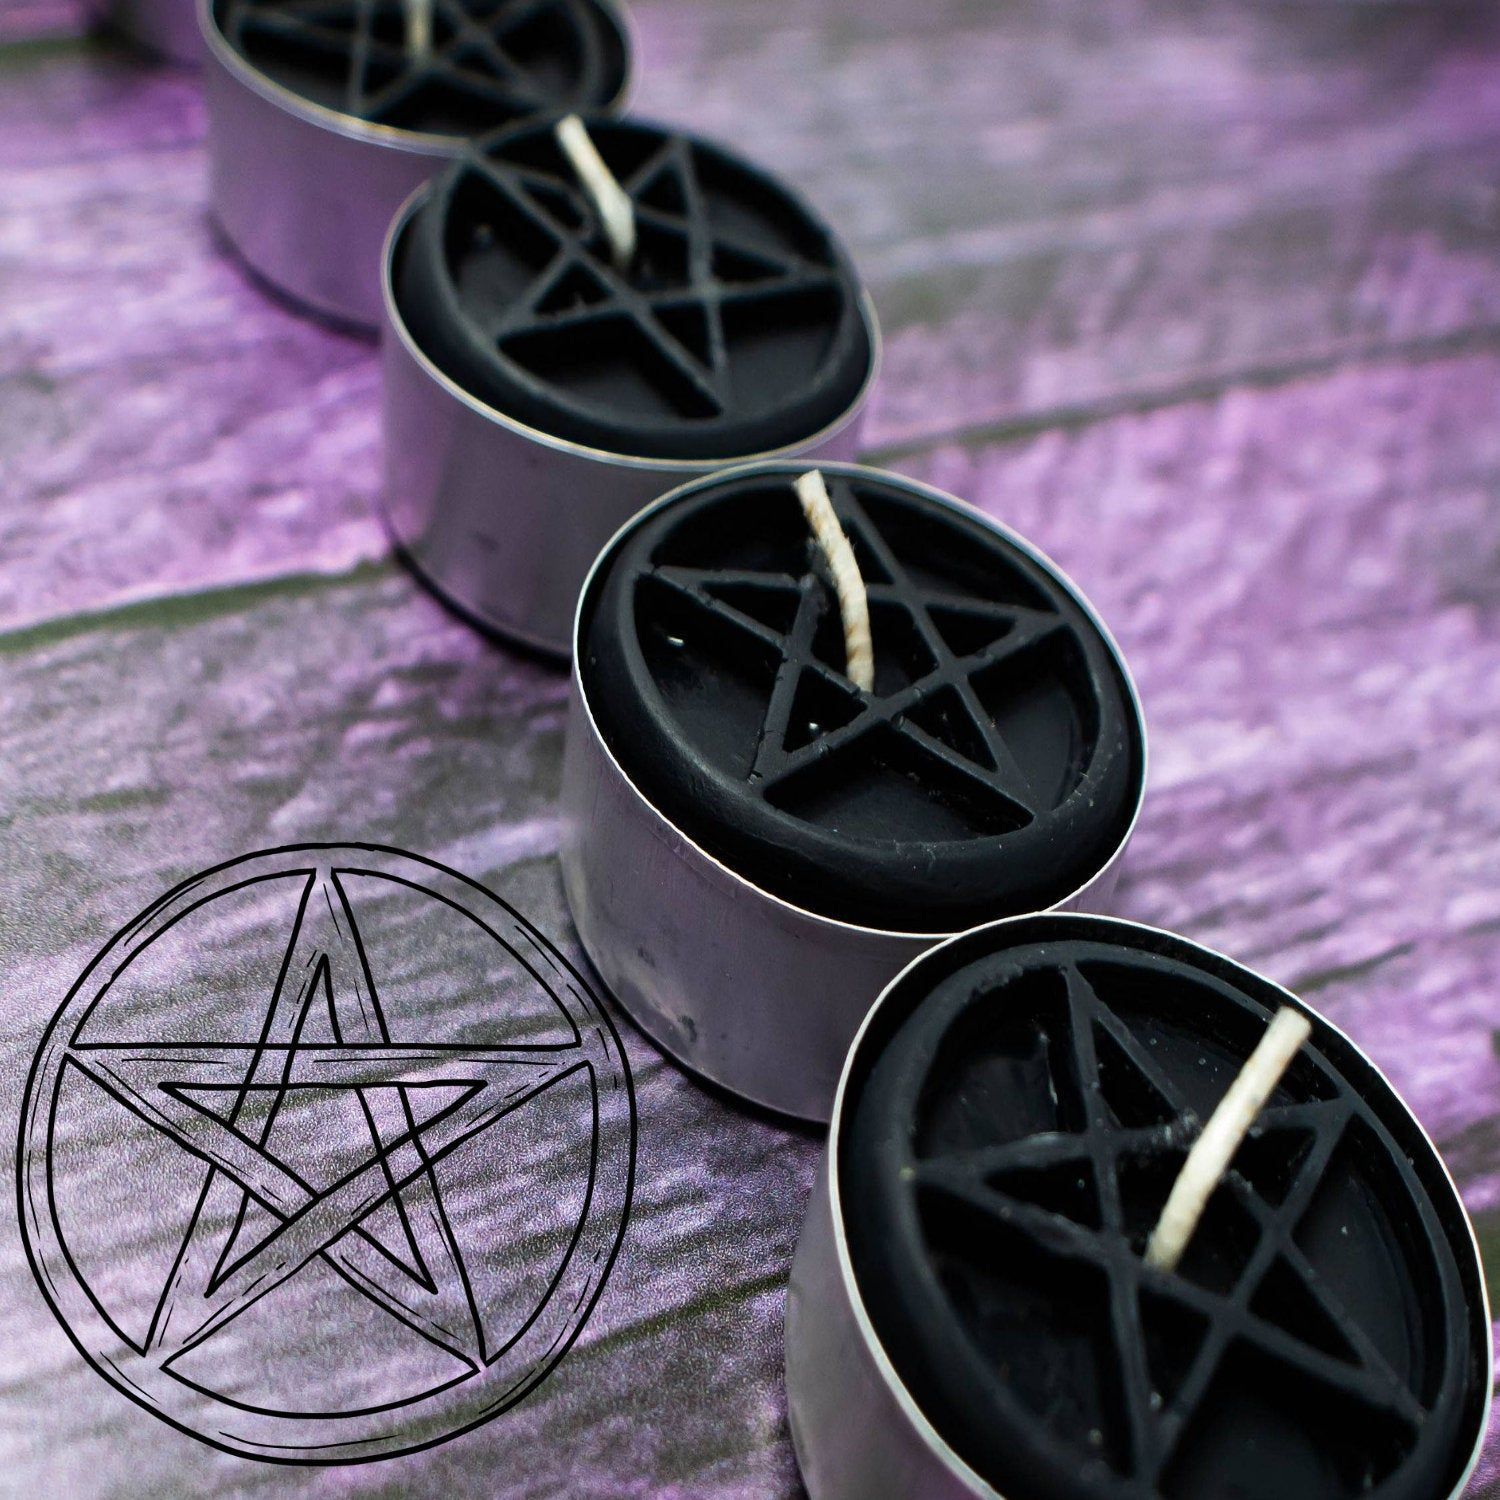 Scented Pentacle Pentegram Tealight Candles  Wiccan Altar and Ritual Candles for Candle Magick and Witchcraft  Spell Halloween Candles